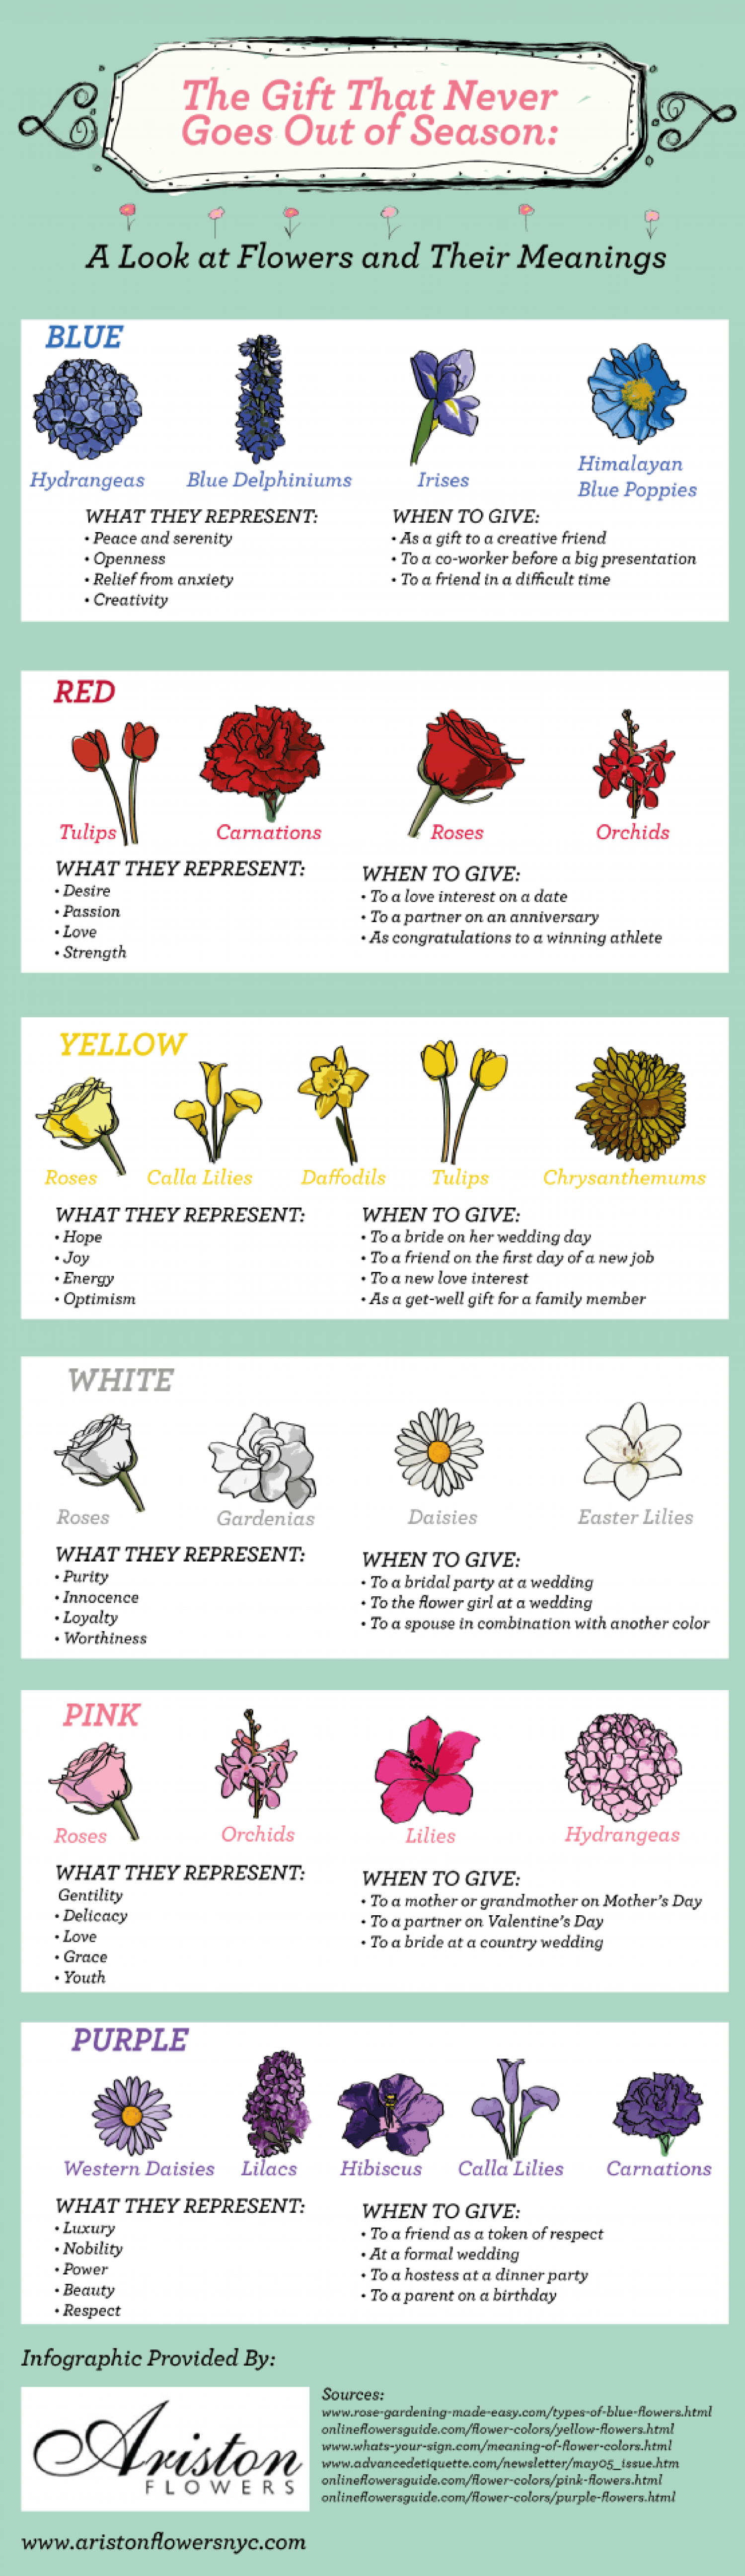 The Gift That Never Goes Out of Season: A Look at Flowers and Their Meanings  Infographic